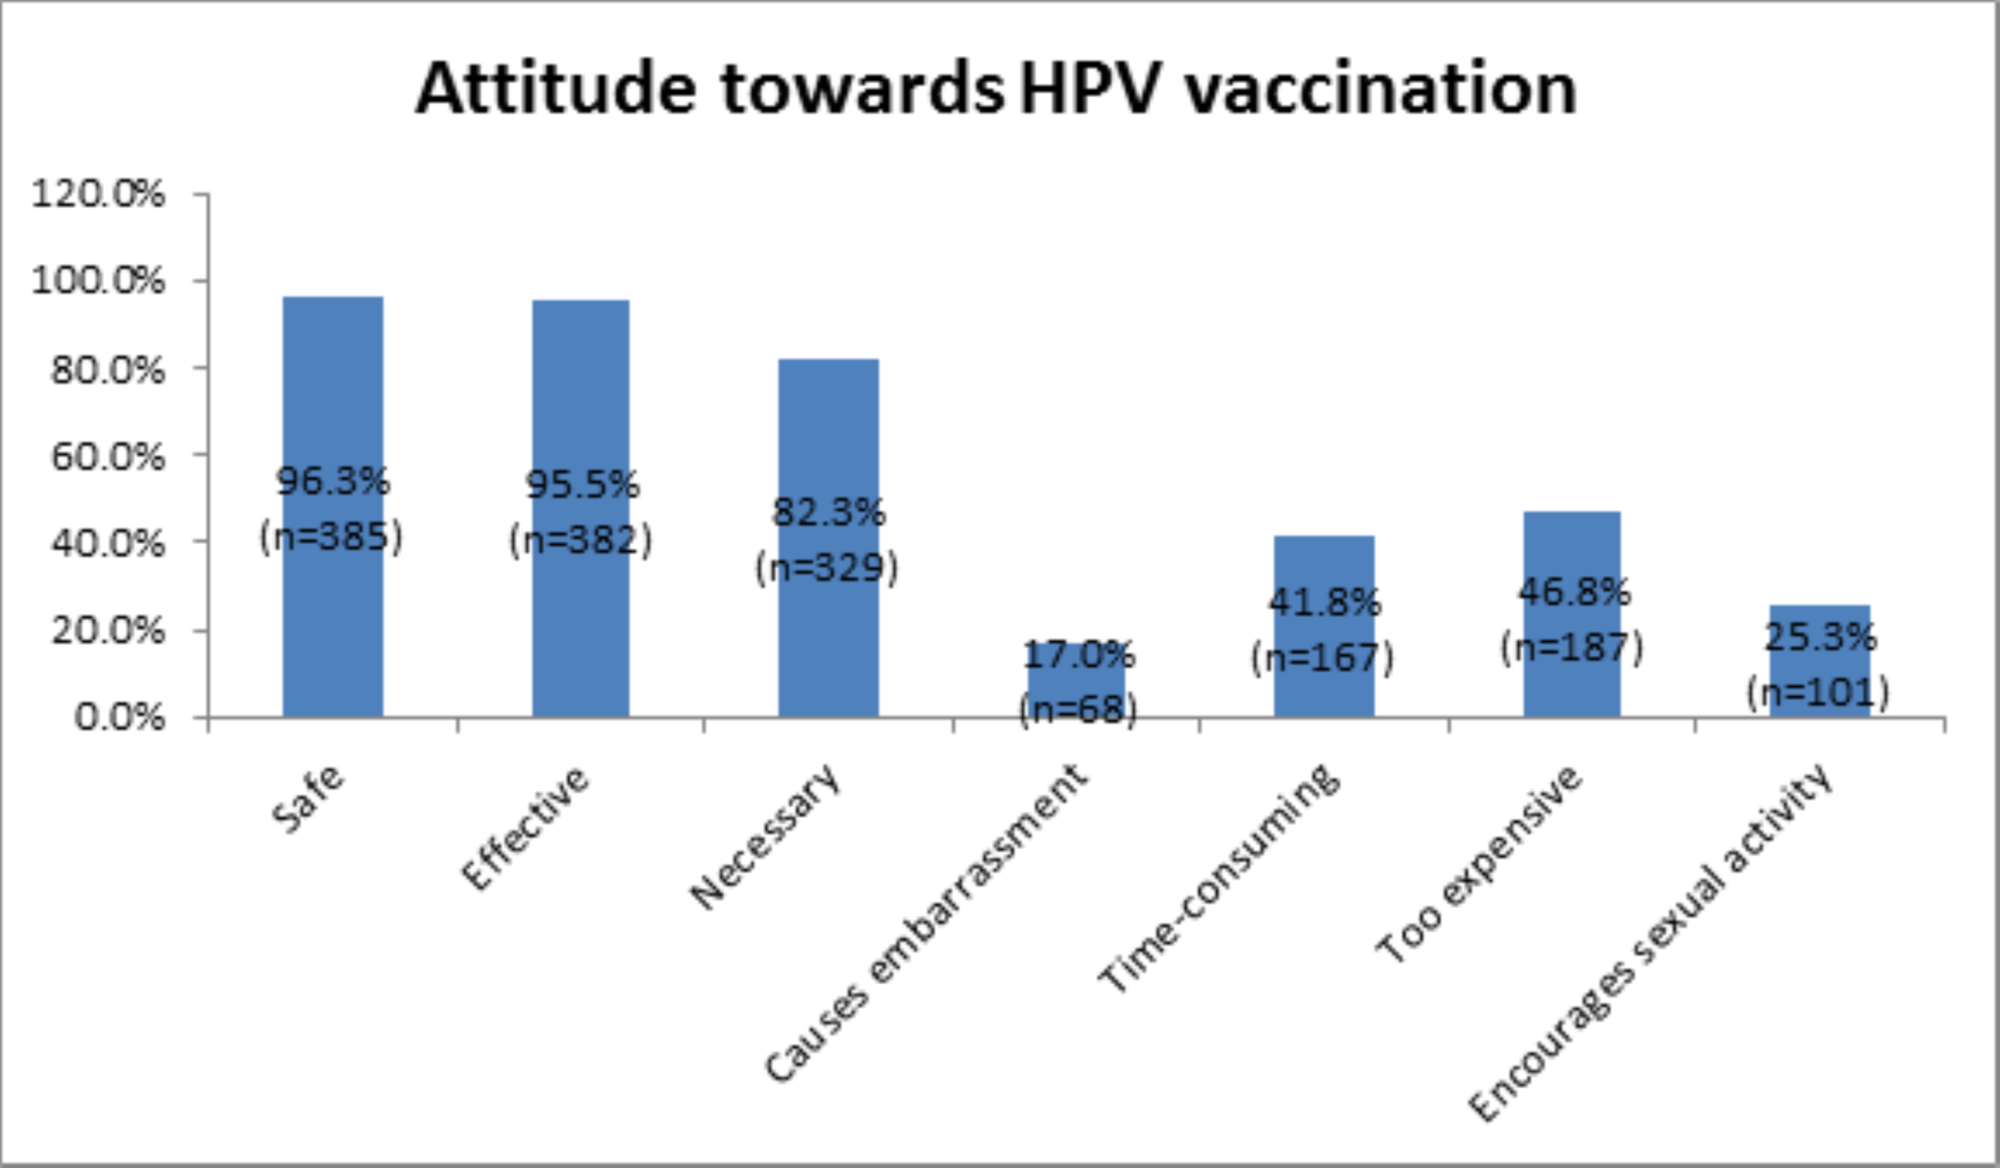 human papillomavirus vaccine intent and uptake among female college students)